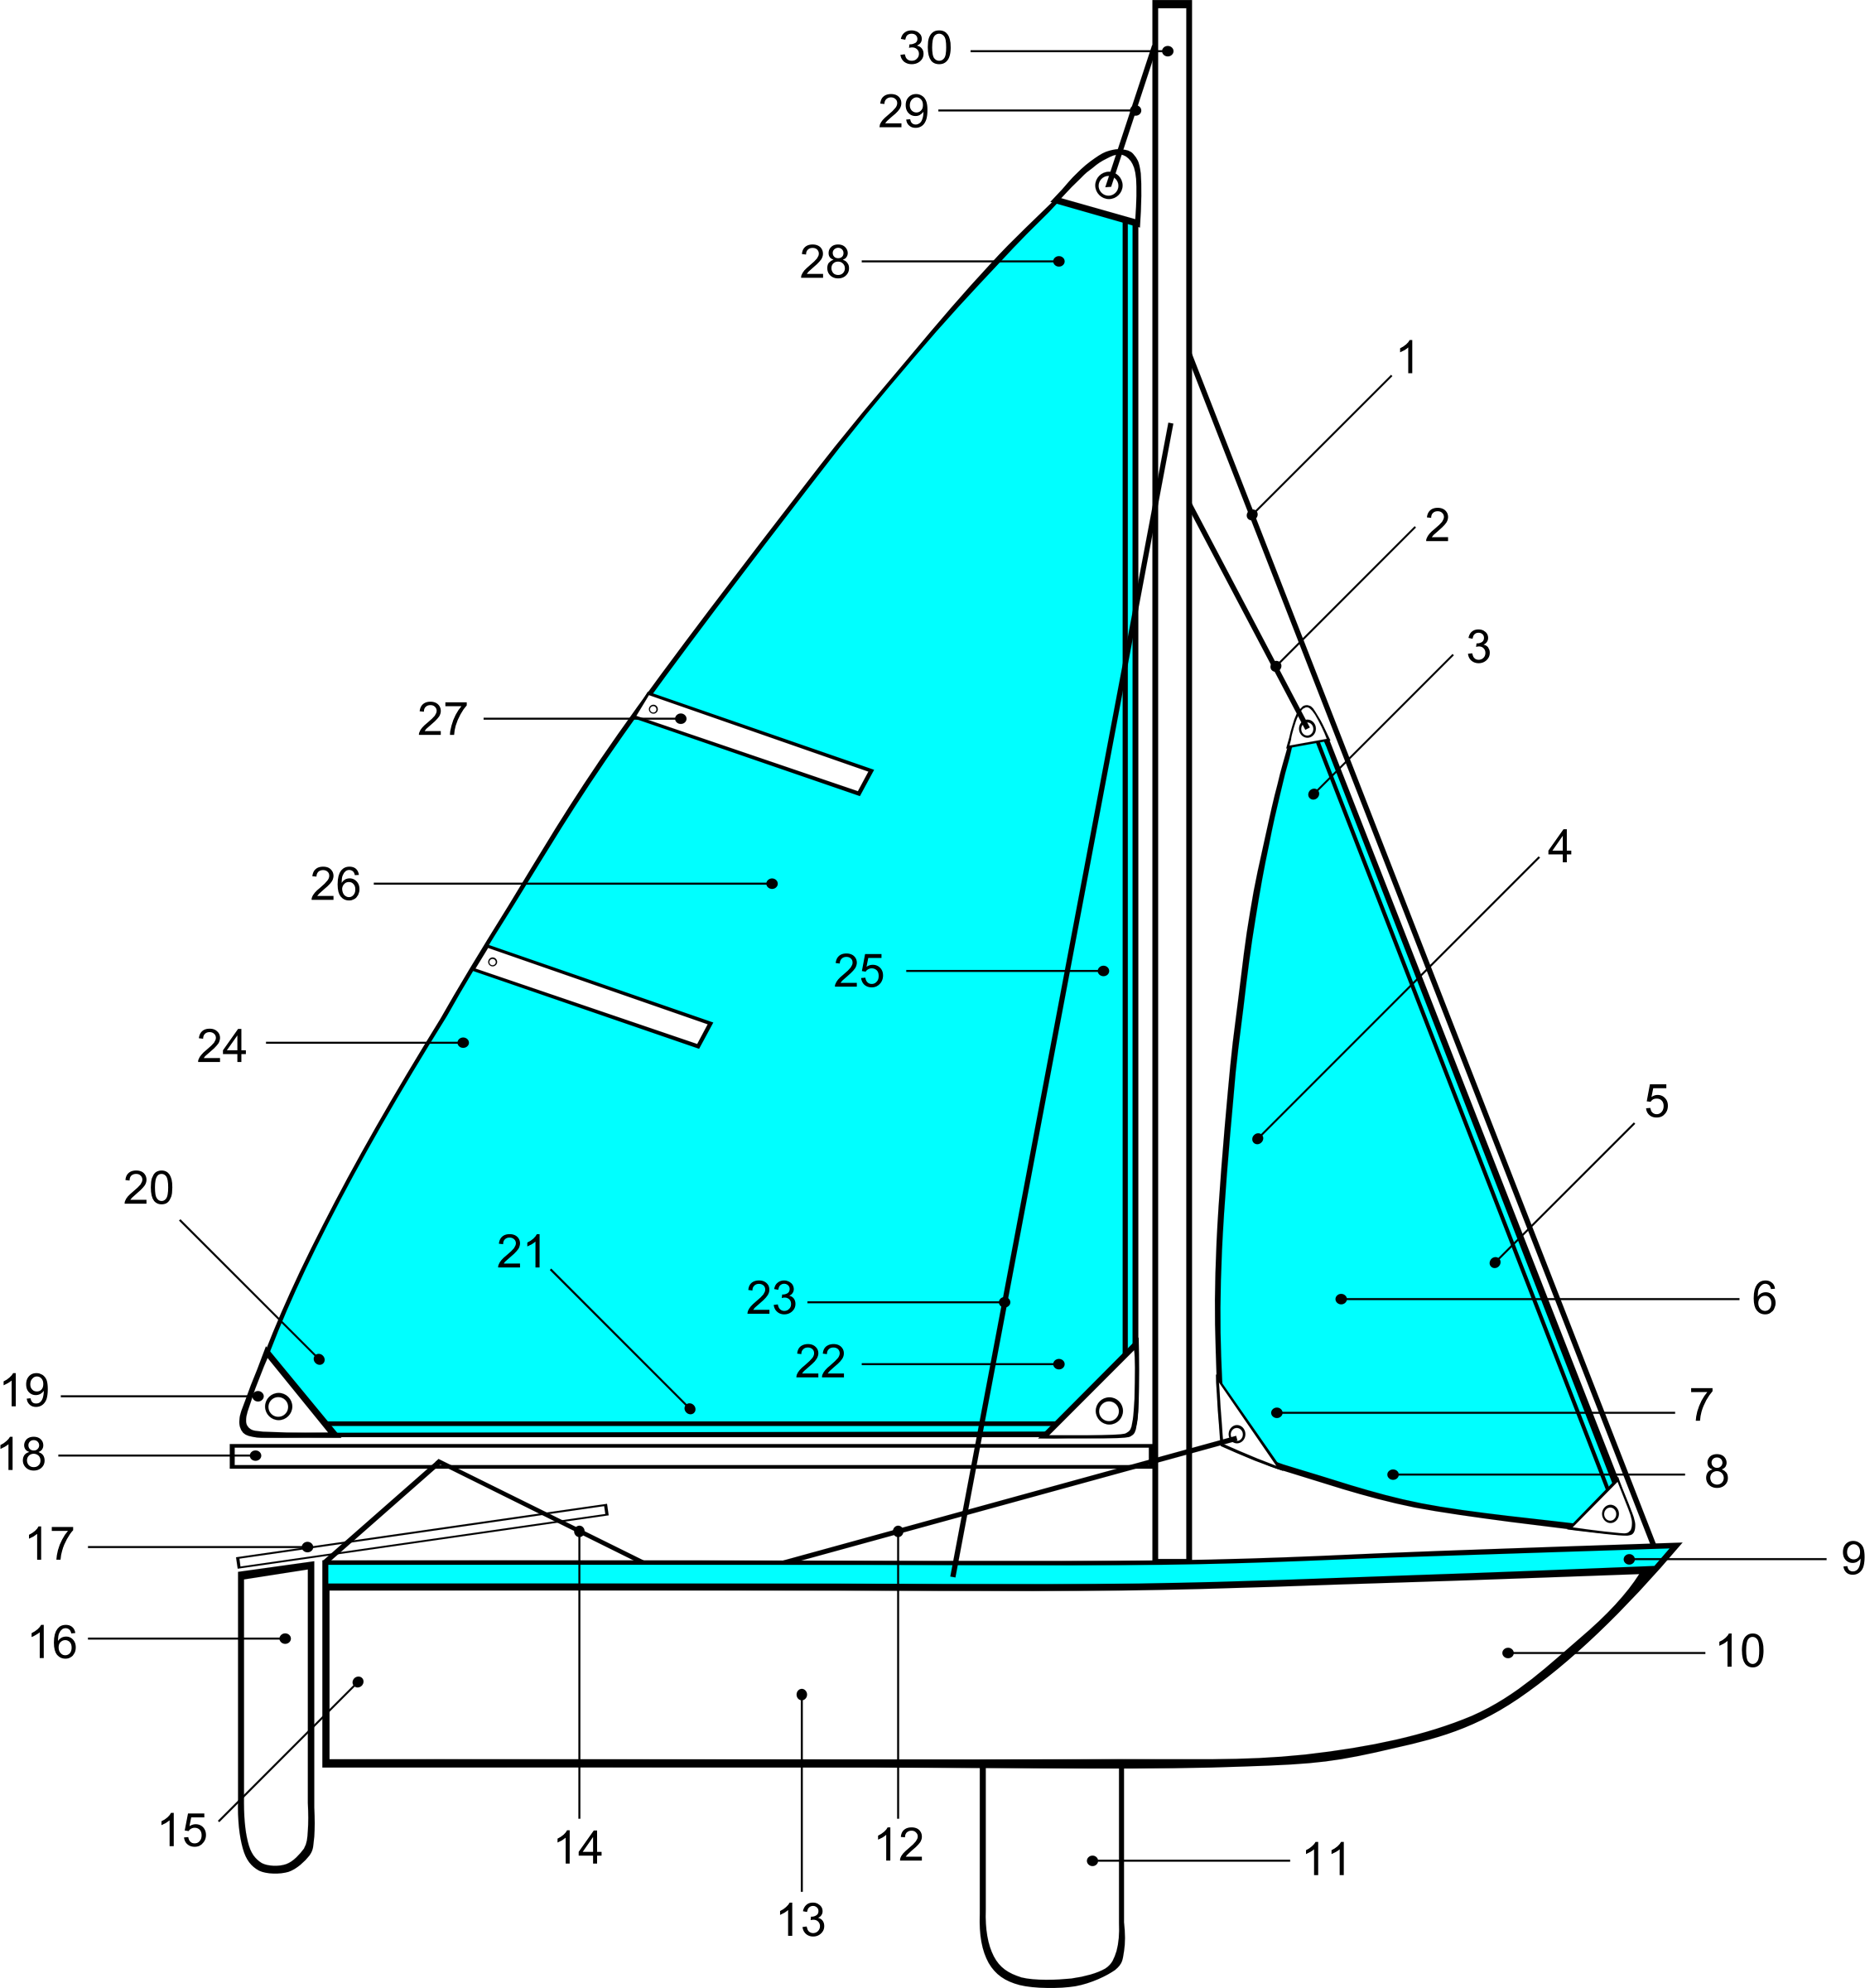 Sailing vector sailboat clipart. Parts of boat illustration